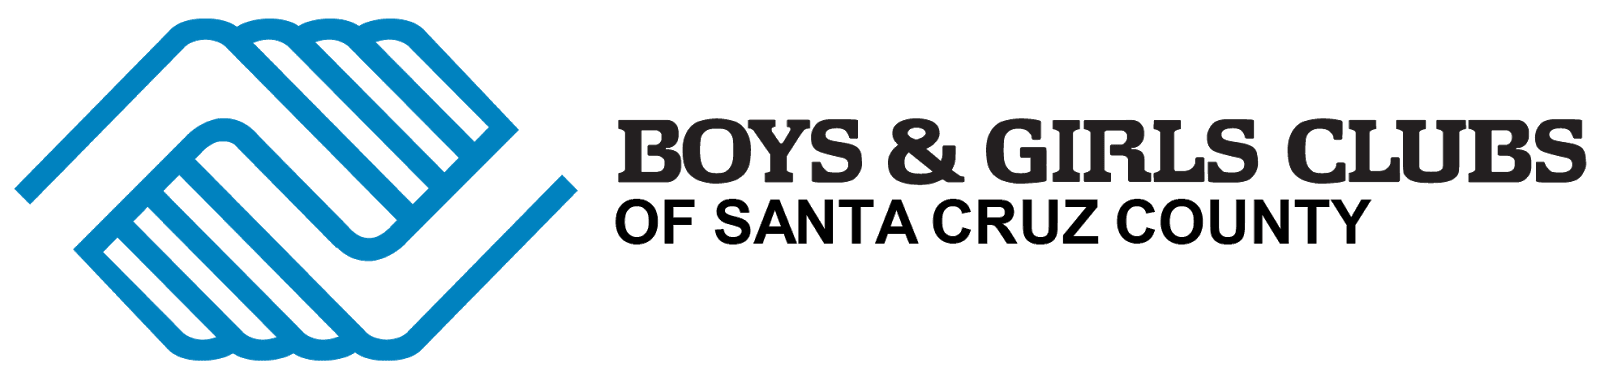 MCSBA Honors Boys and Girls Clubs with Award